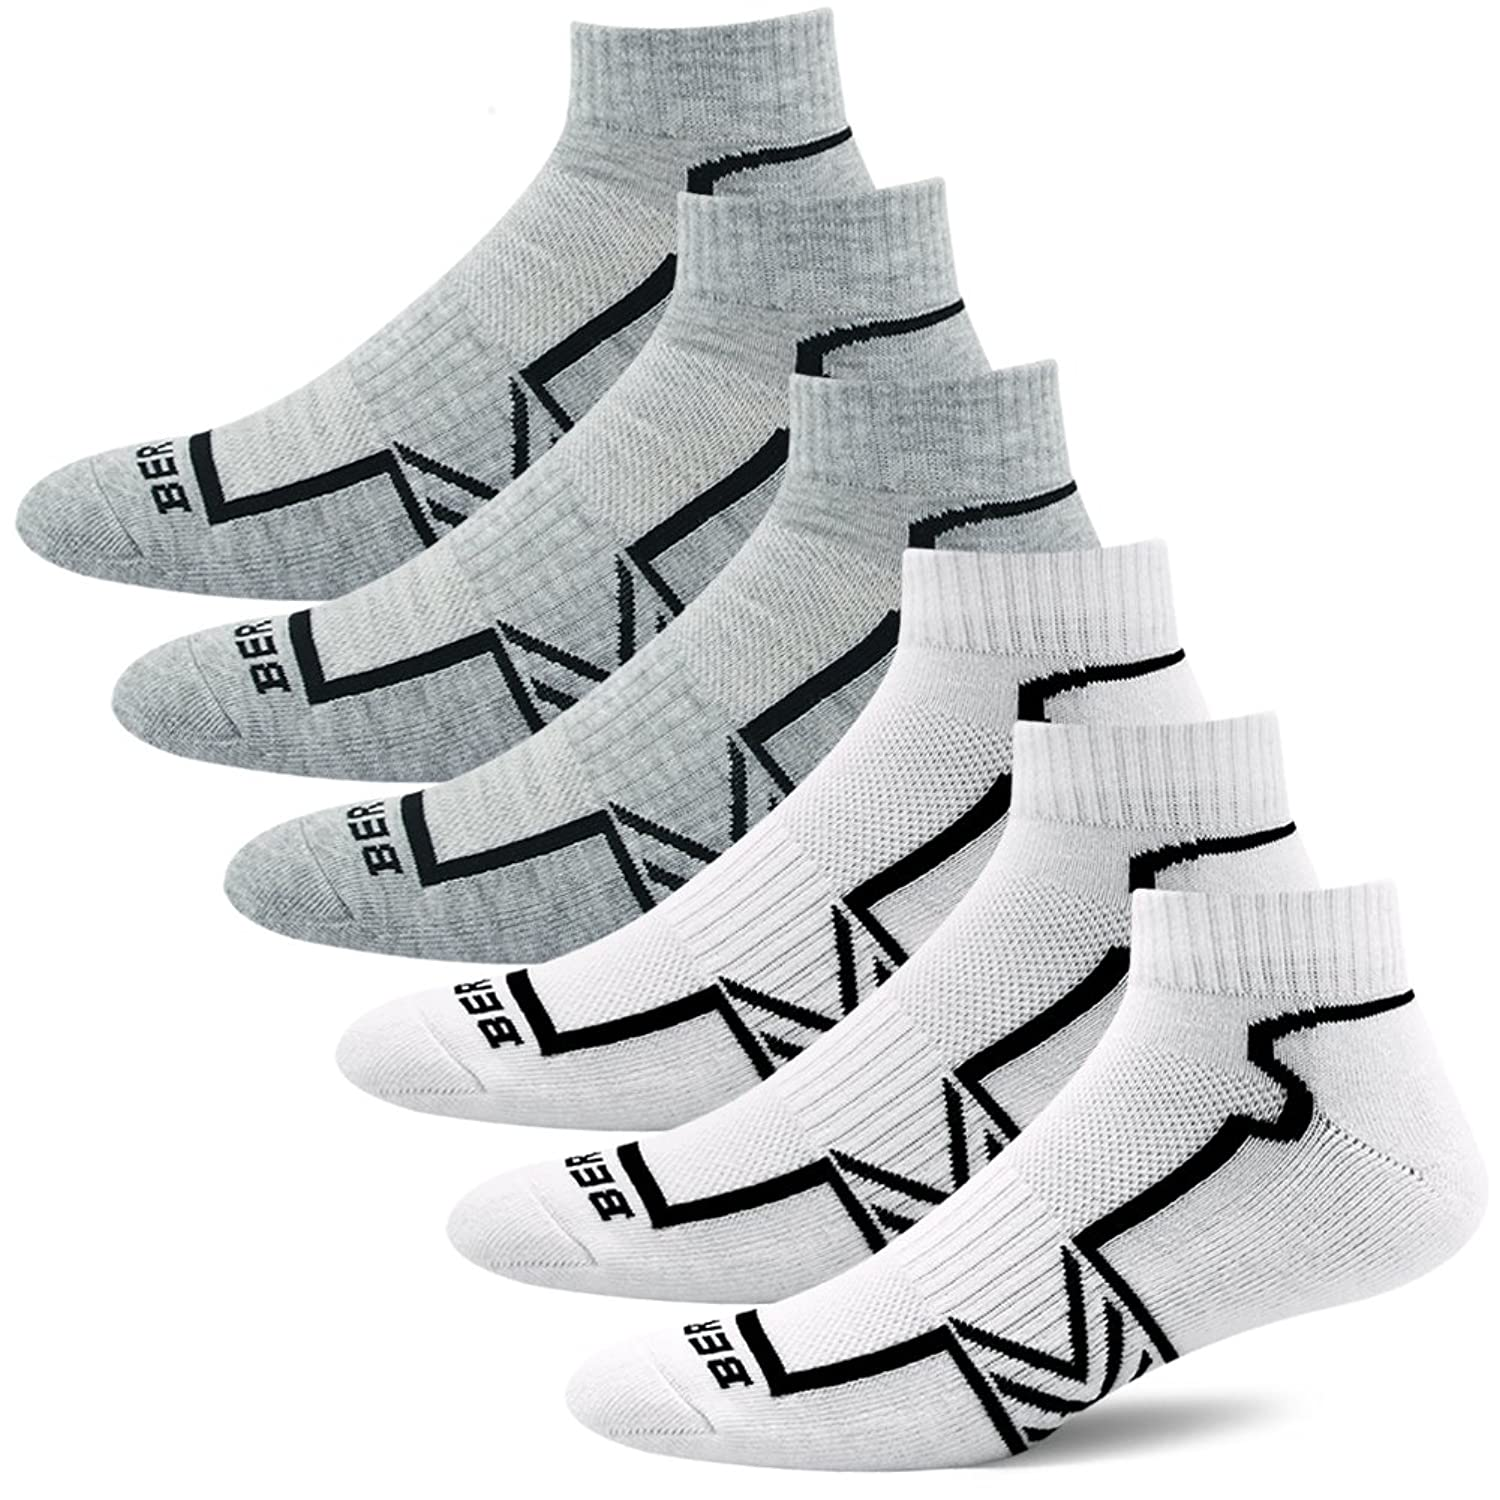 BERING Men's Performance Athletic Ankle Running Socks (6 Pair Pack)